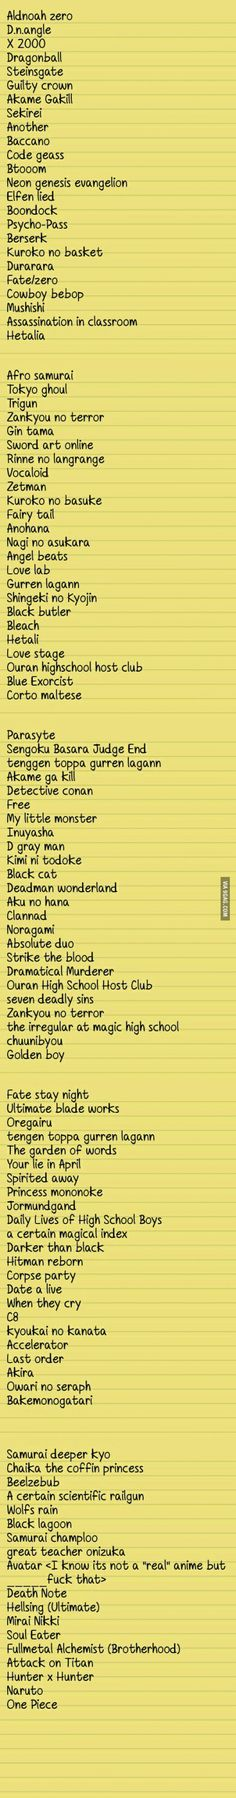 For all anime fans who don't know what to watch next: here's my no-life-collection! feel free to add one!